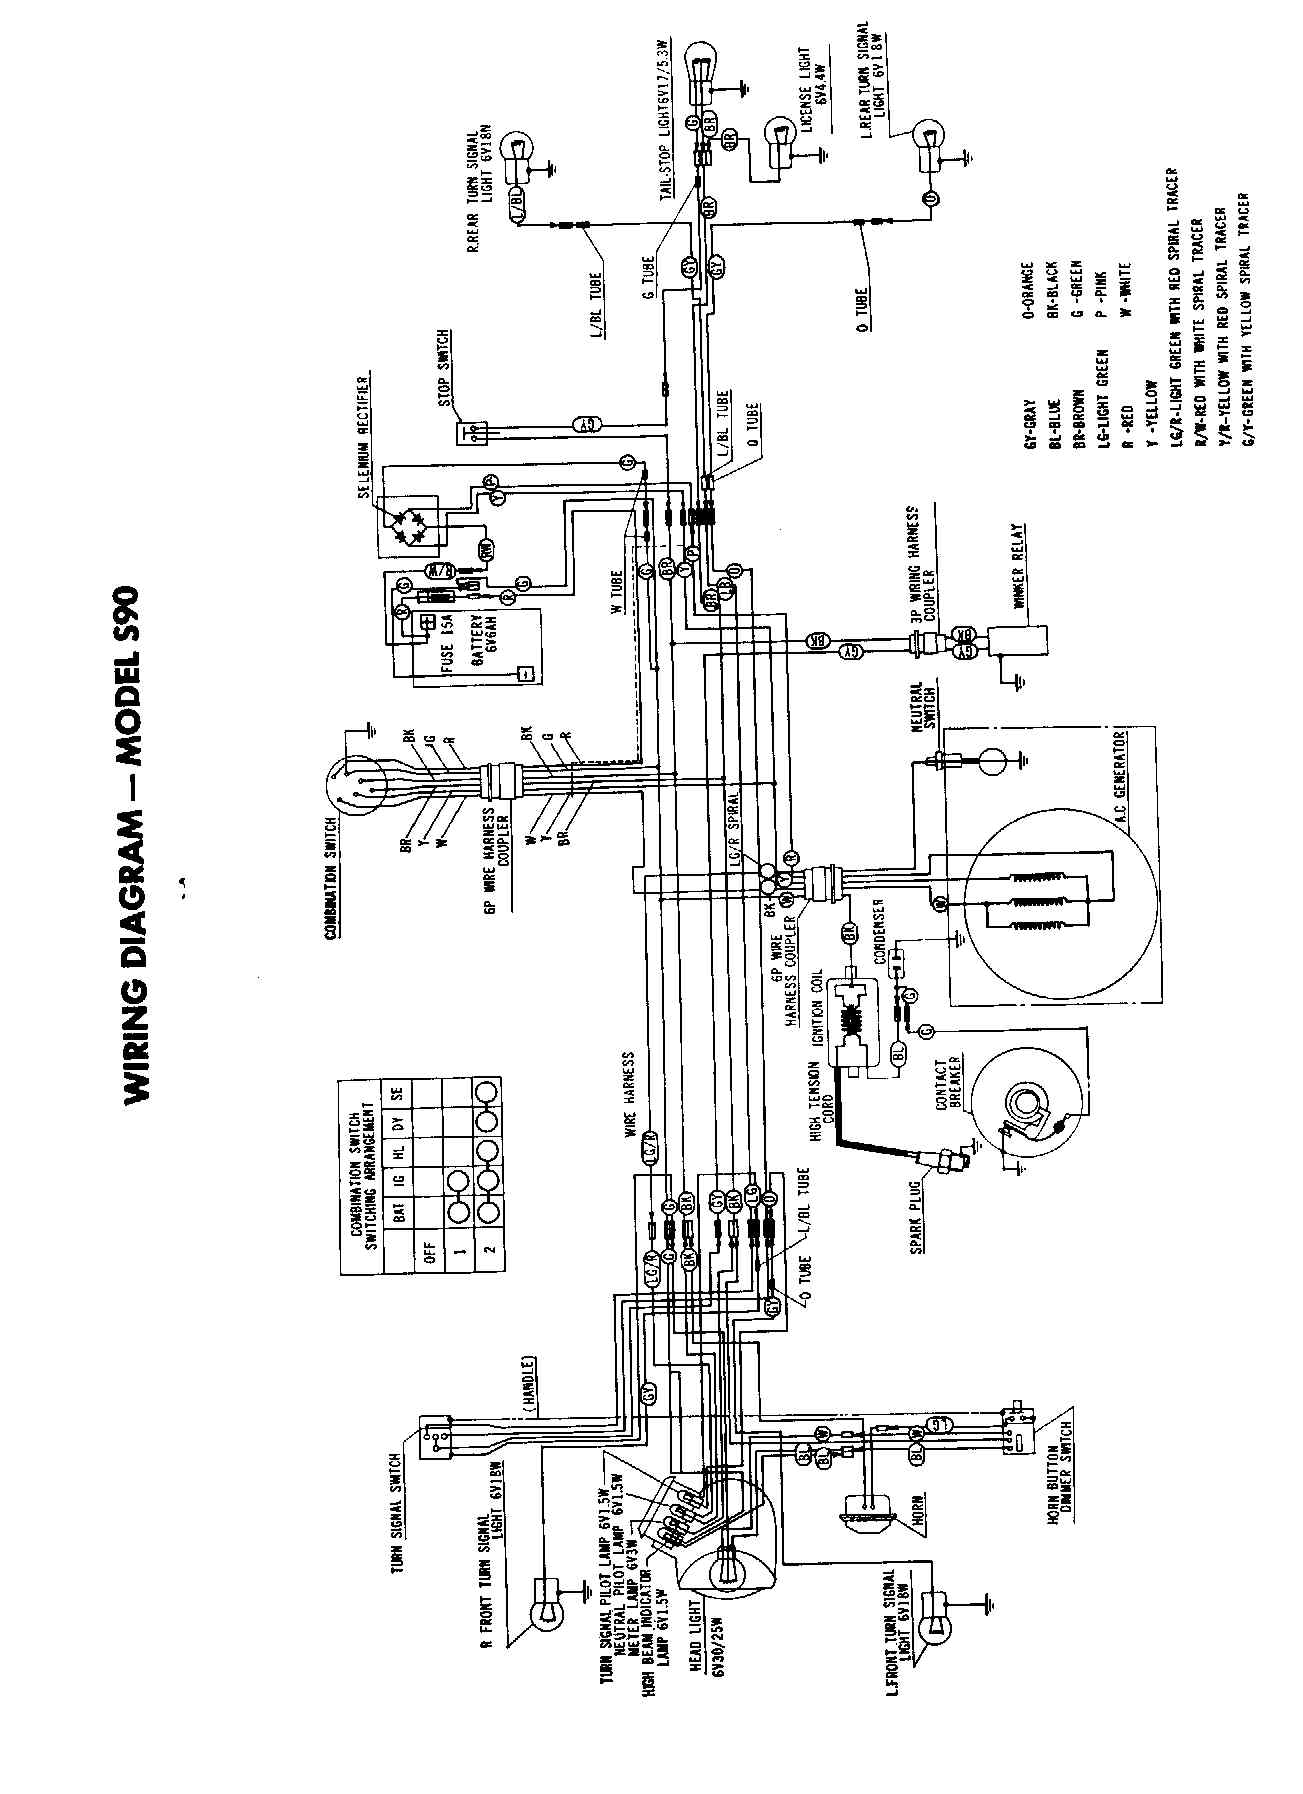 Wiring Diagrams Fan Motor Replacement As Well Electric Diagram Furthermore 1964 S90